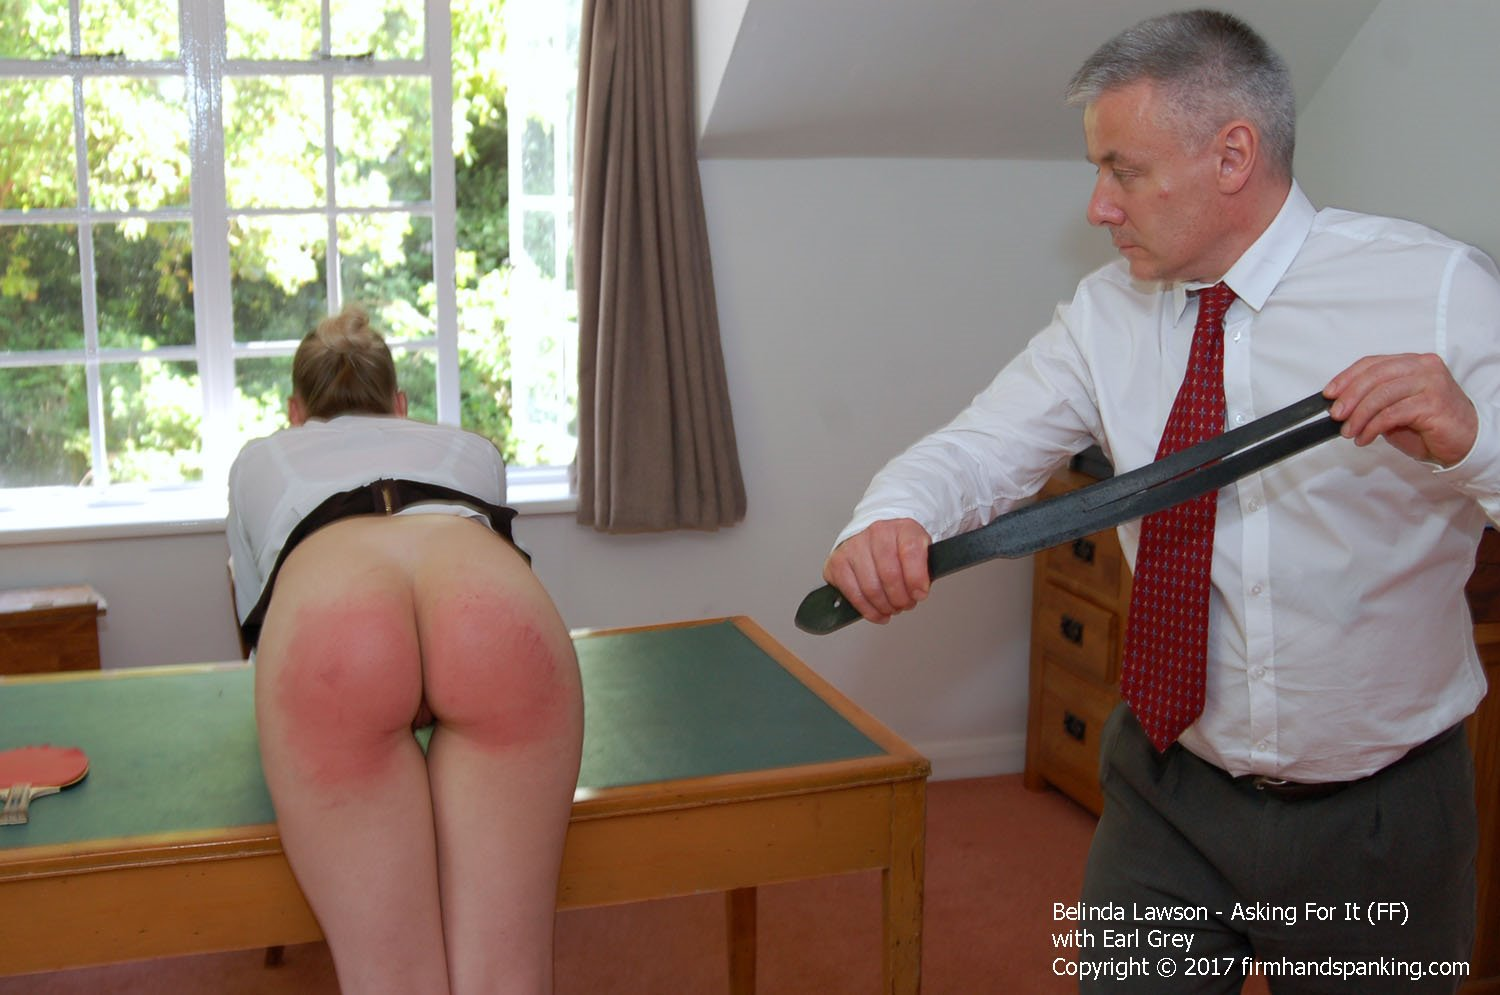 Christian domestic discipline promotes spanking wives to maintain biblical marriage